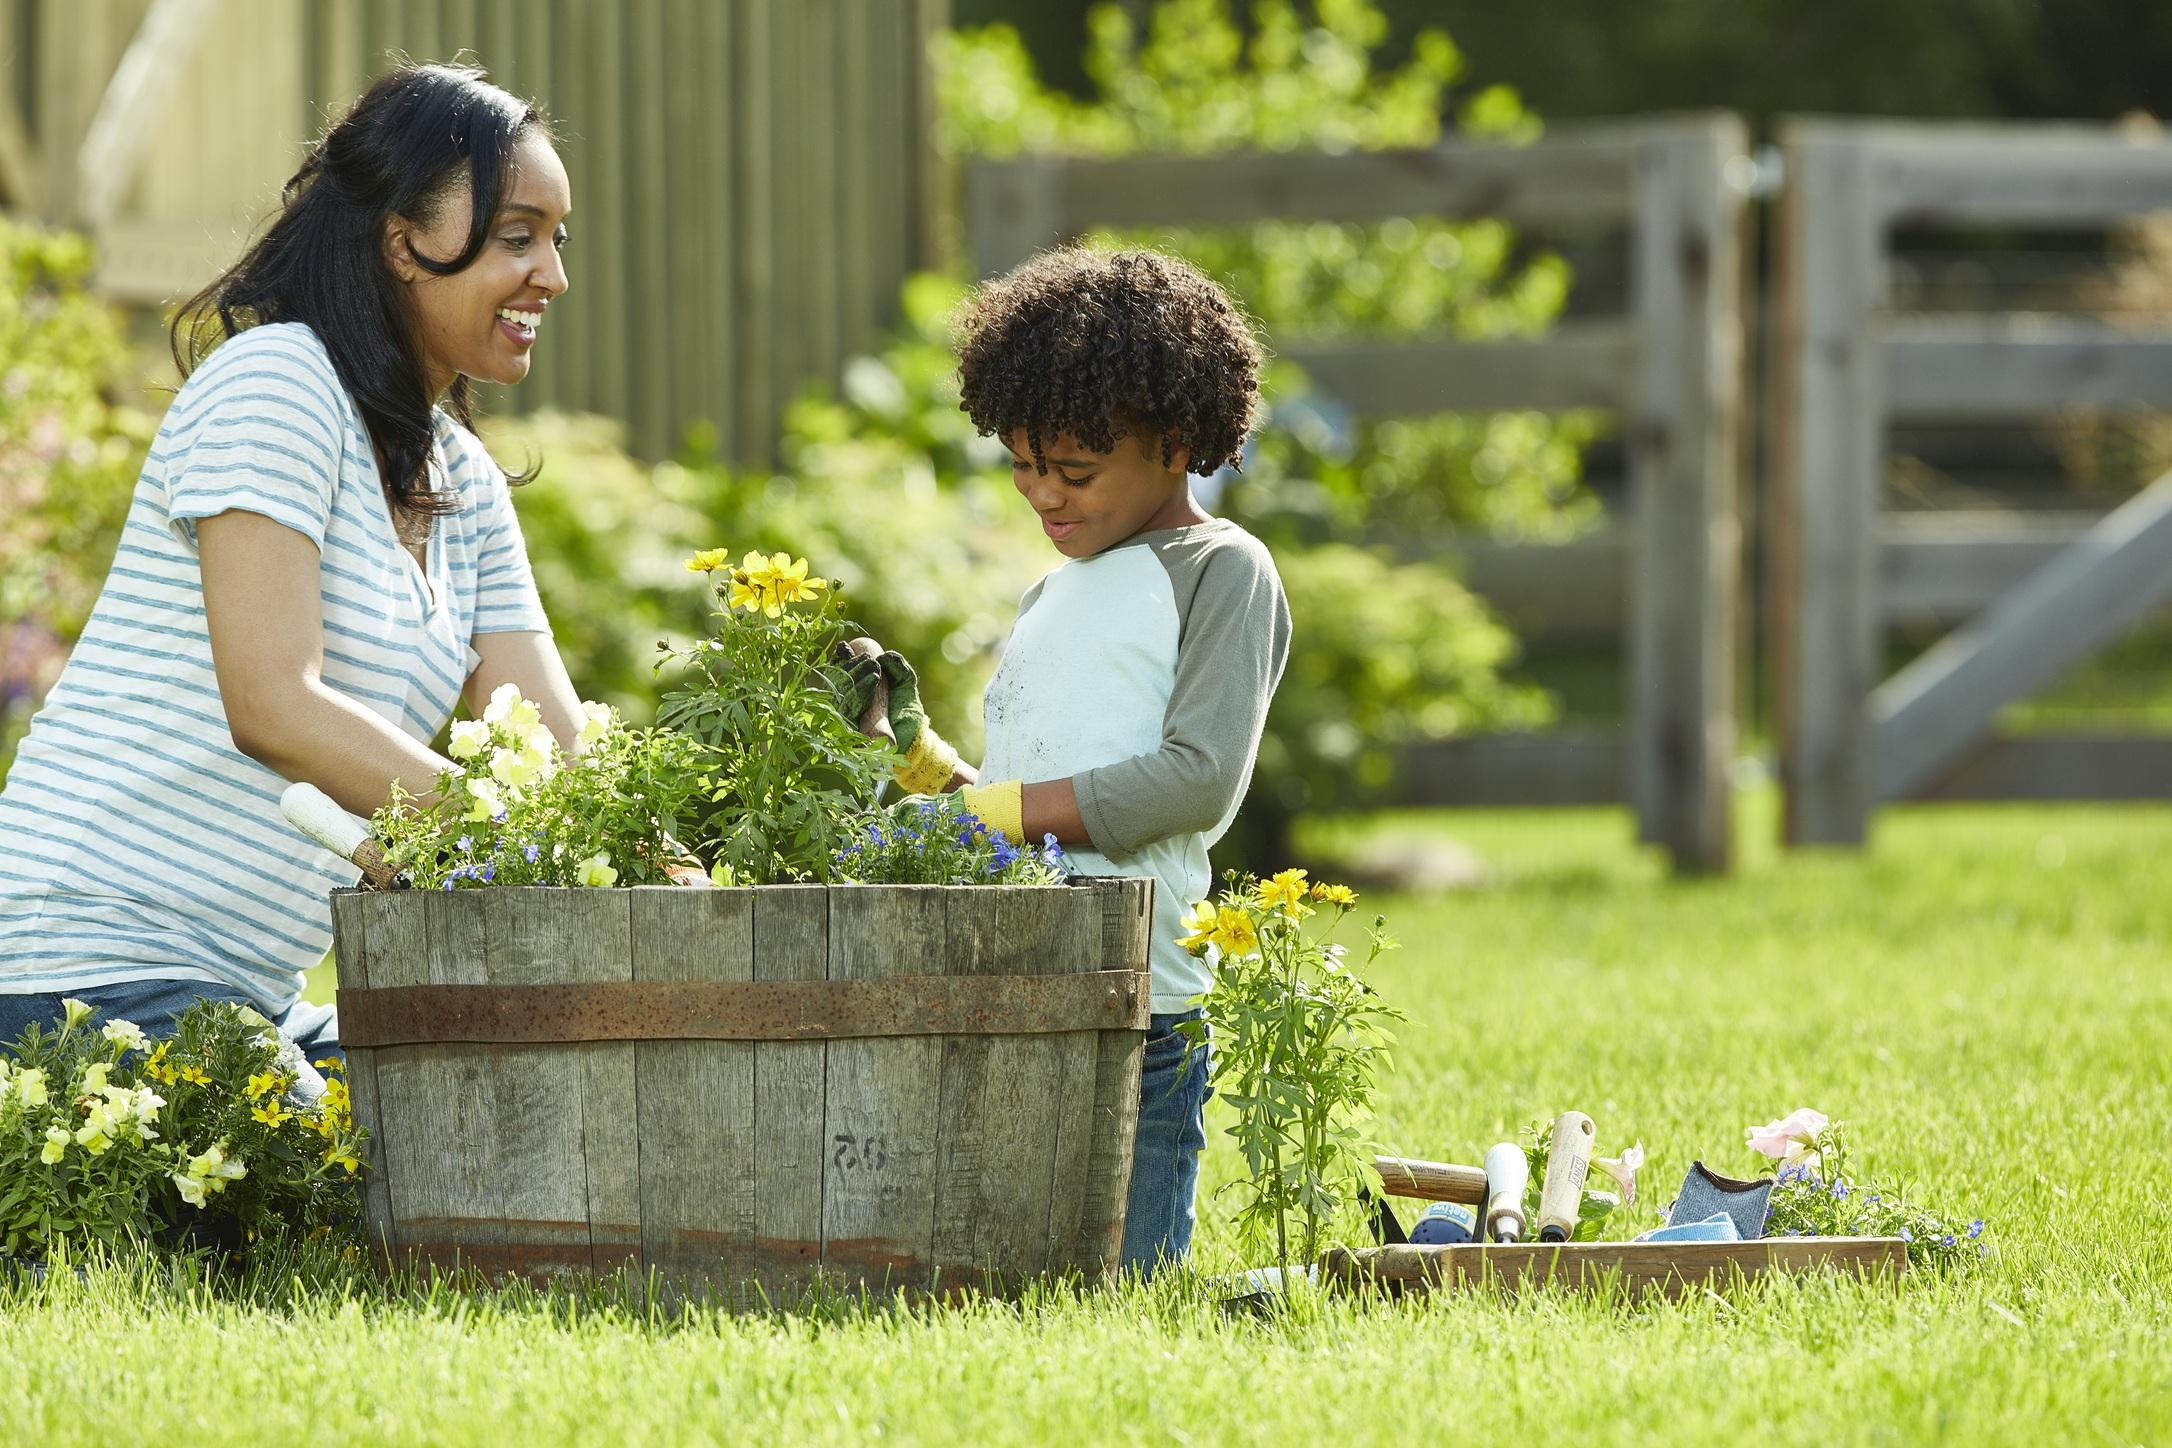 A woman and child plant a mix of flowers in an upcycled, half-whiskey barrel as part of their container garden in the yard.